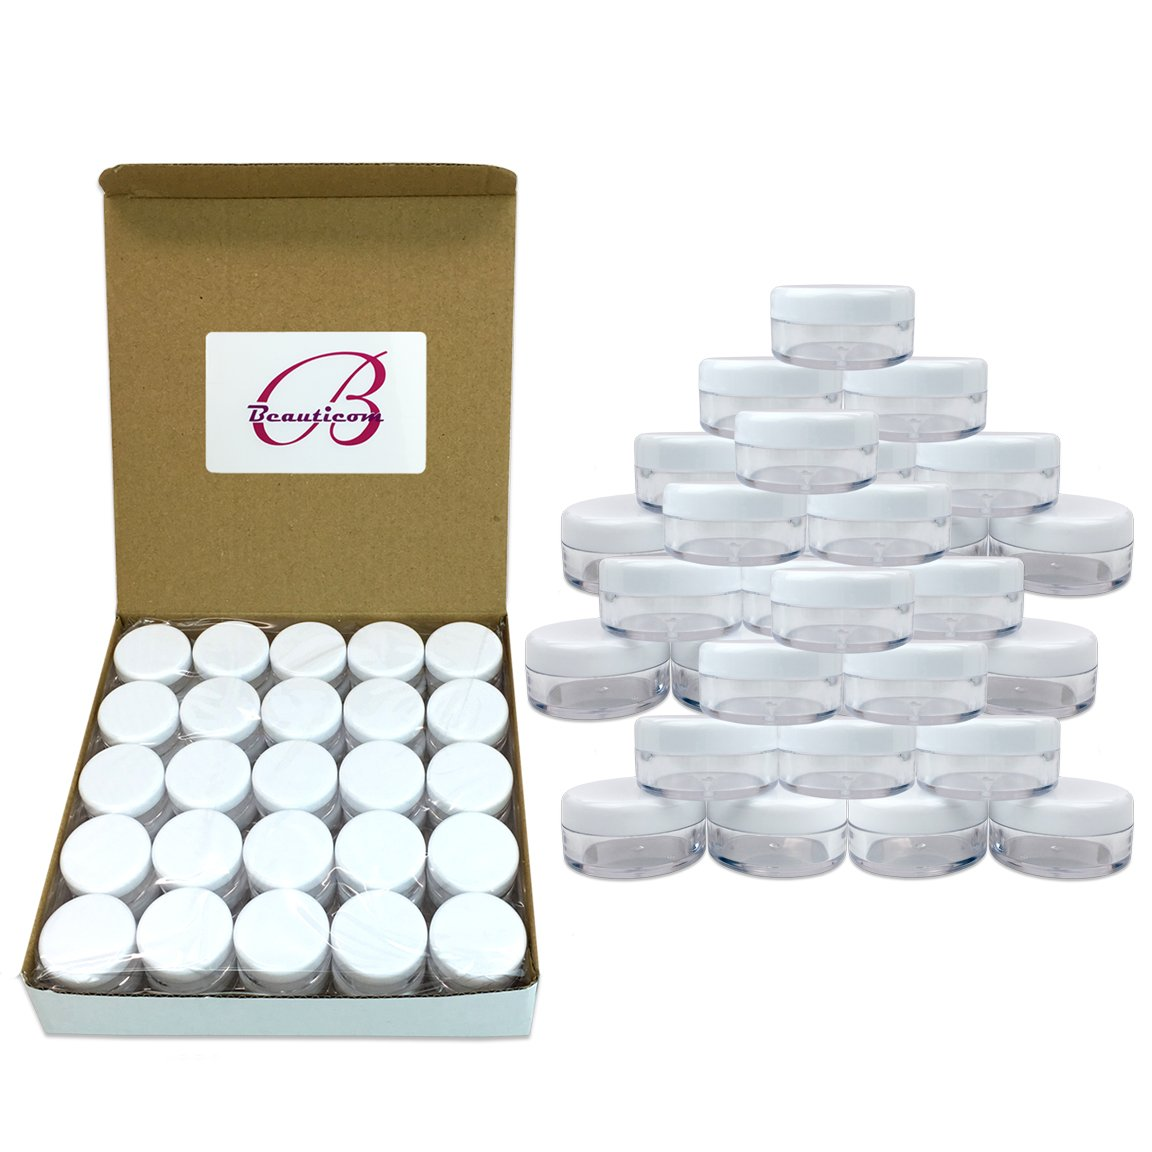 (2000 Pcs) Beauticom® 5G/5ML High Quality Round Clear Jars with White Lids for Acrylic Powder, Rhinestones, Charms and Other Nail Accessories - BPA Free